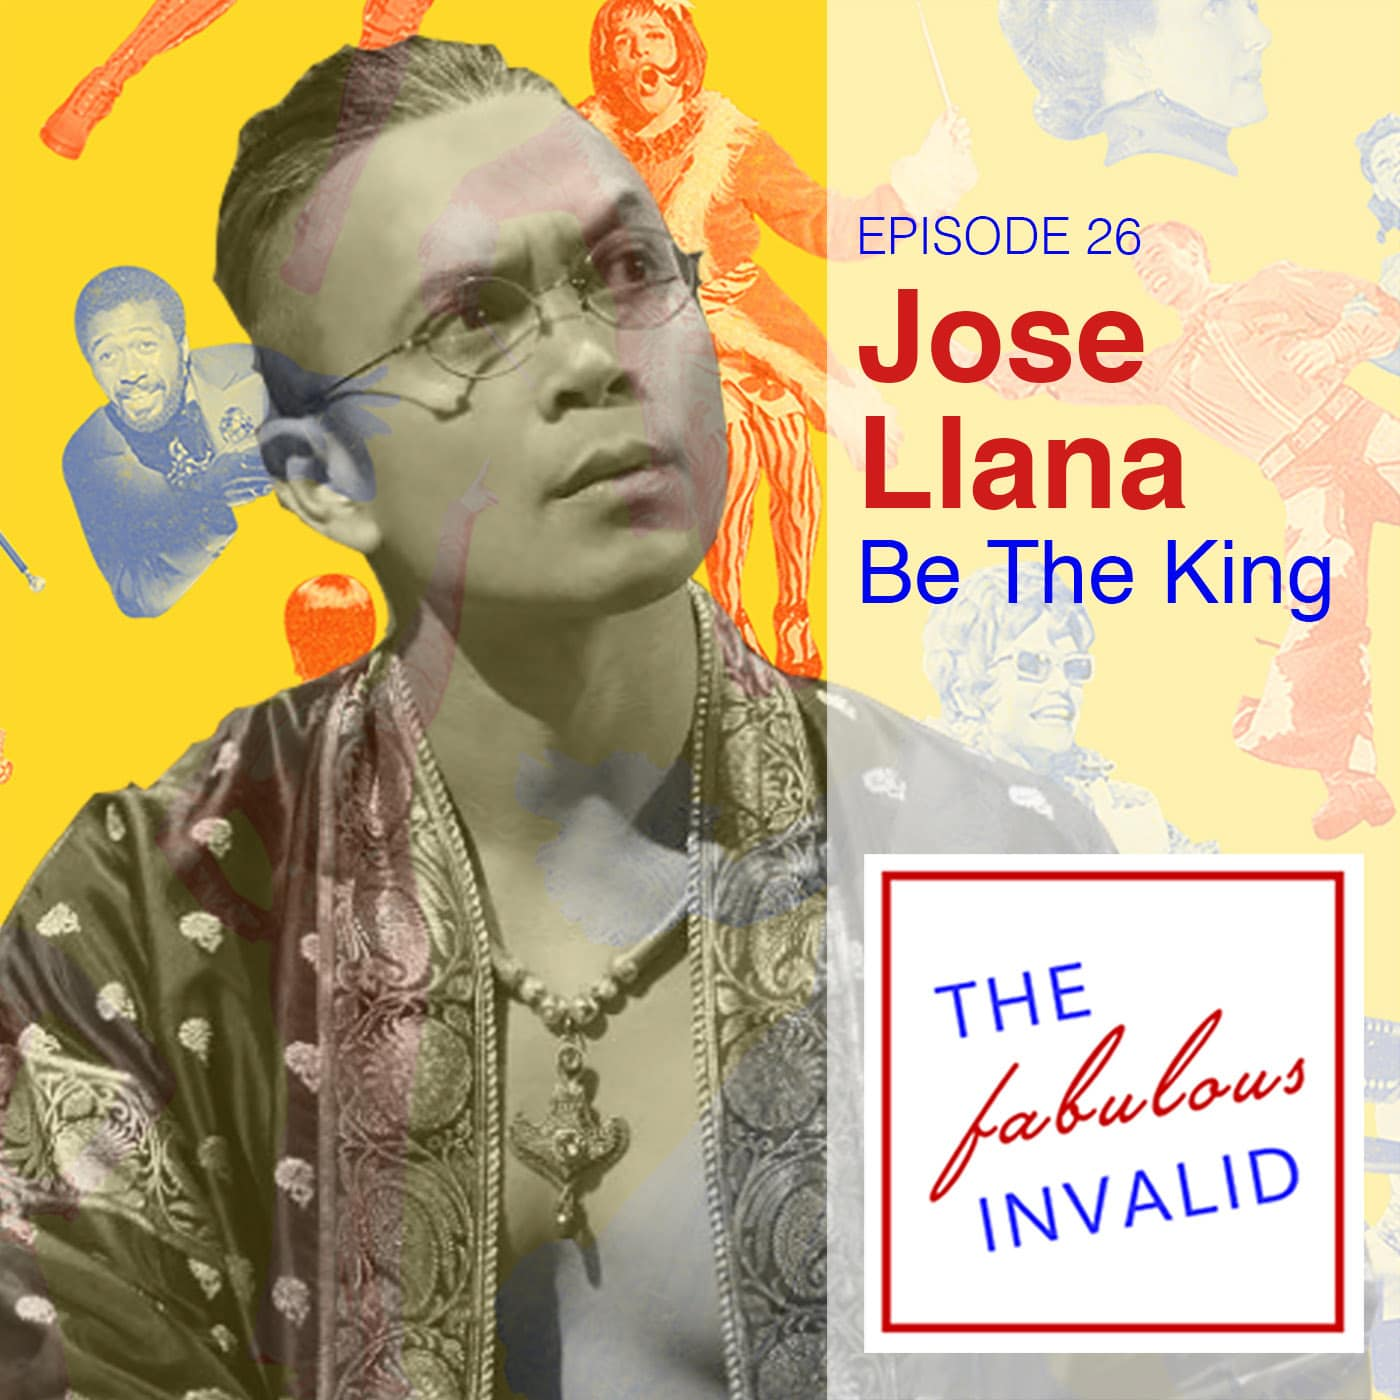 The Fabulous Invalid Ep 26 Jose Llana